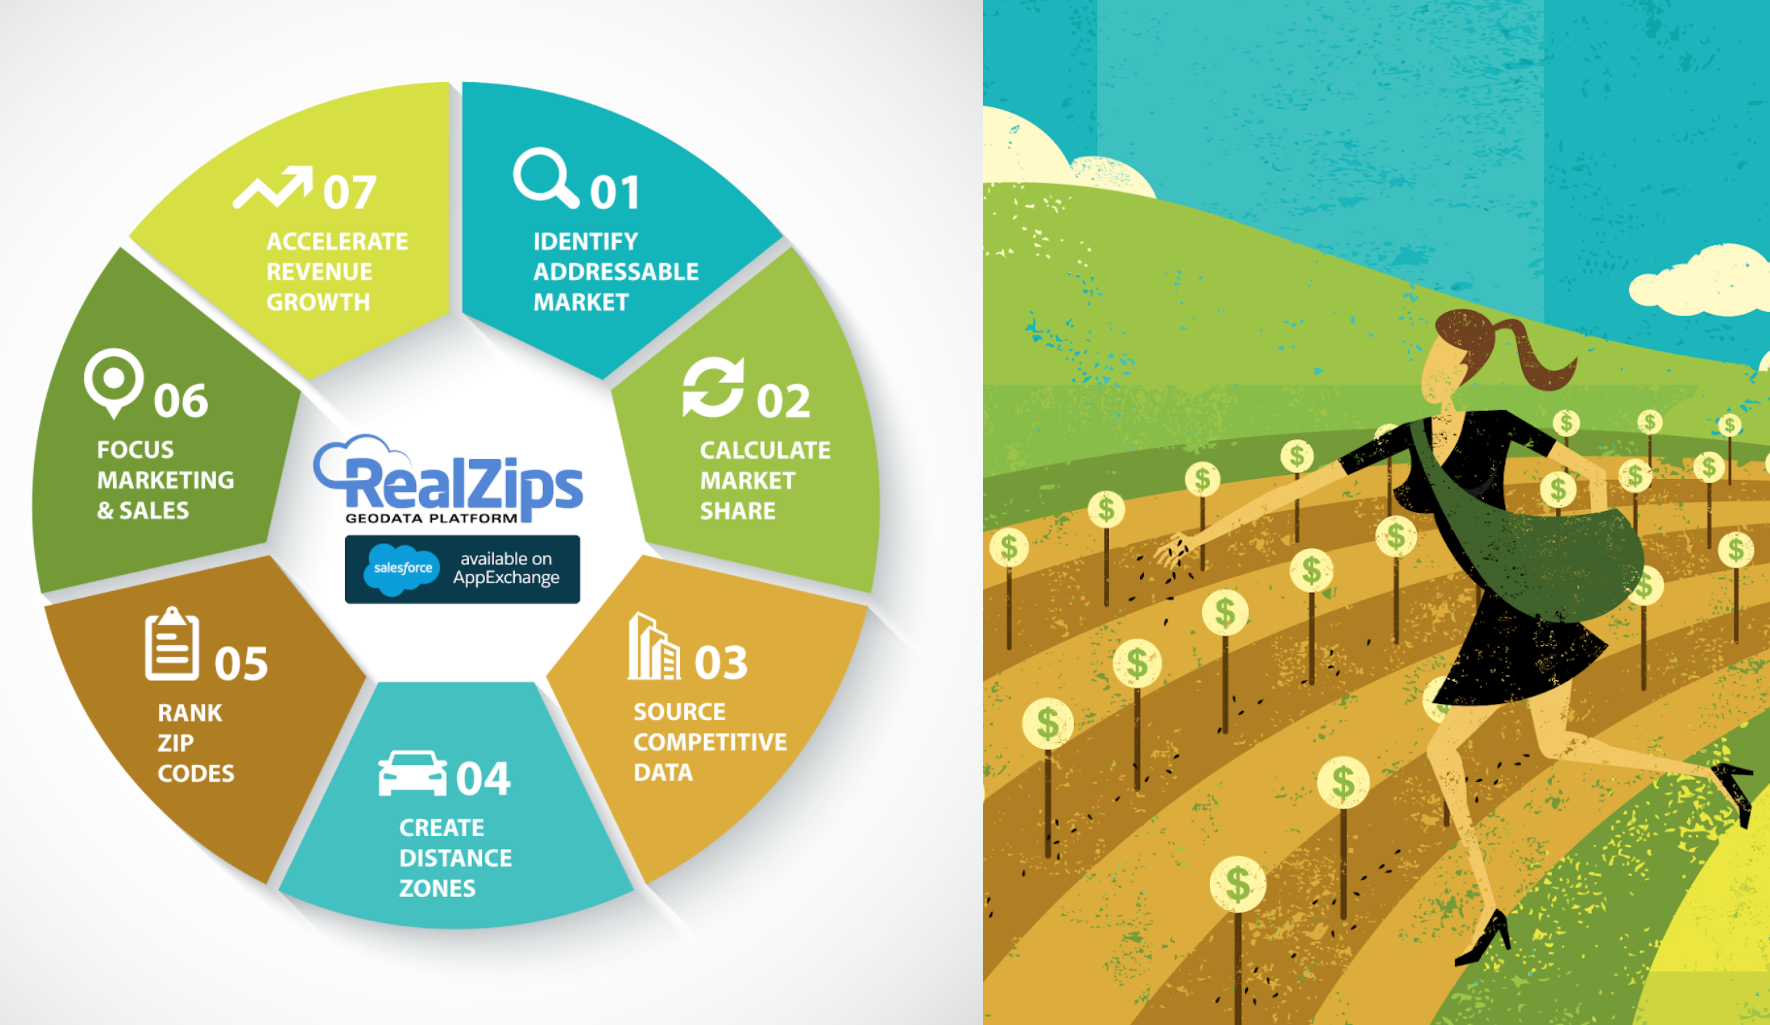 Accelerate revenue with RealZips 1770x1025.png